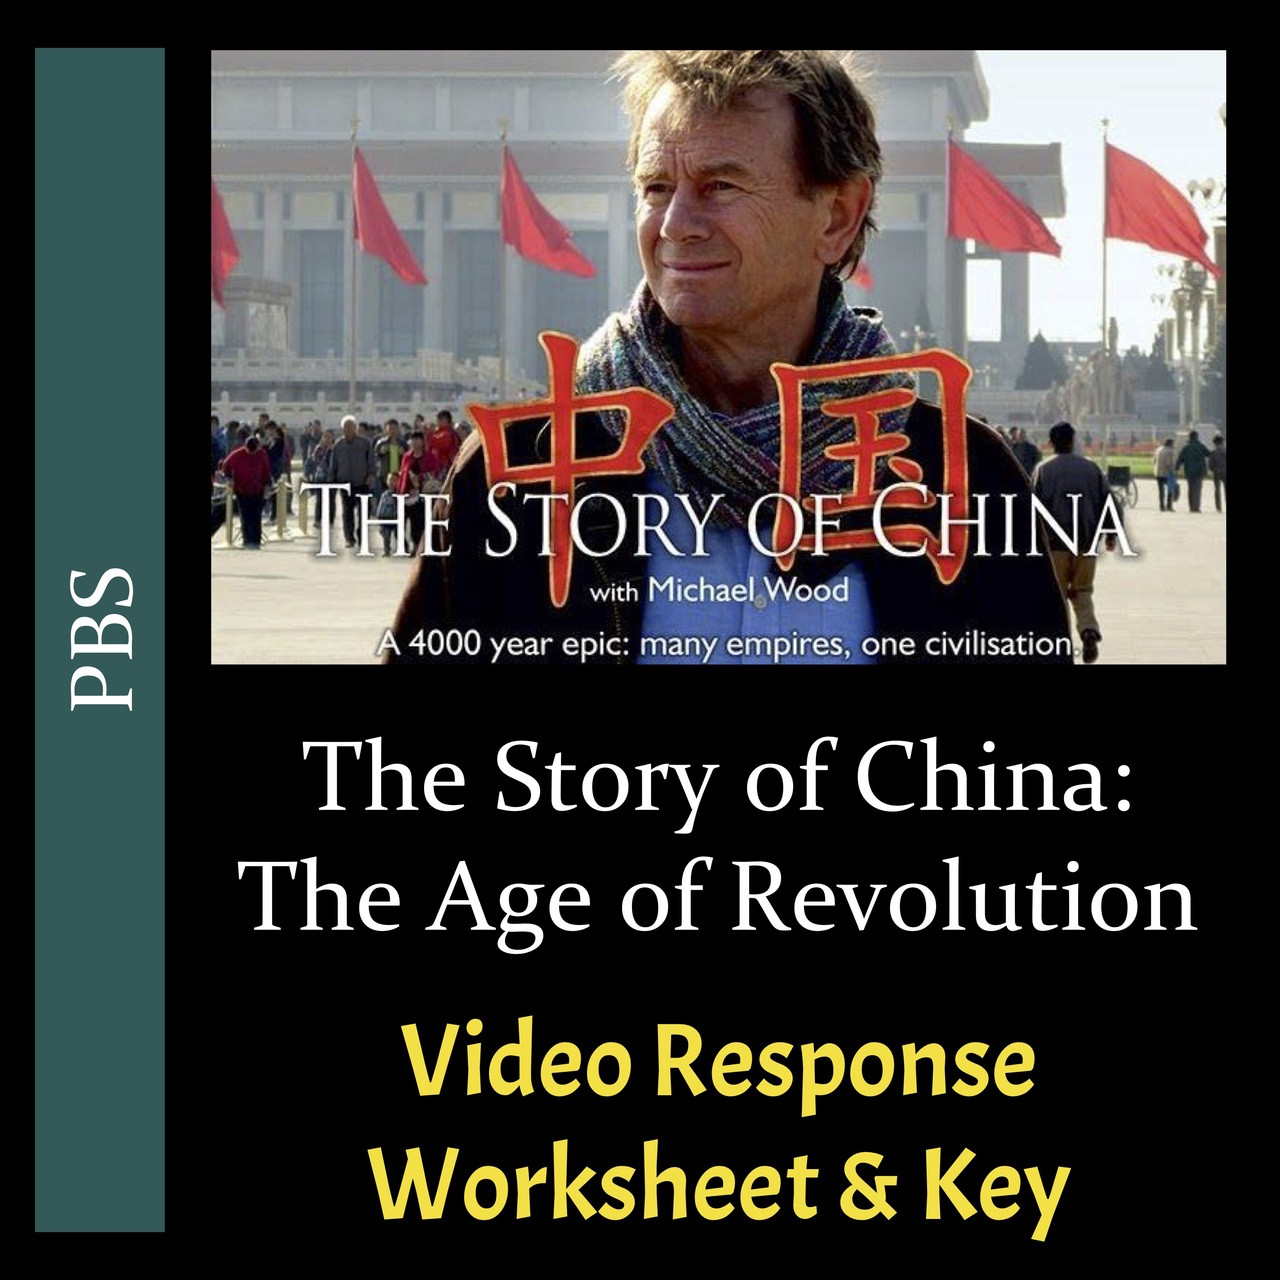 medium resolution of The Story of China - Episode 6: The Age of Revolution - Video Response  Worksheet \u0026 Key (Editable) - Amped Up Learning